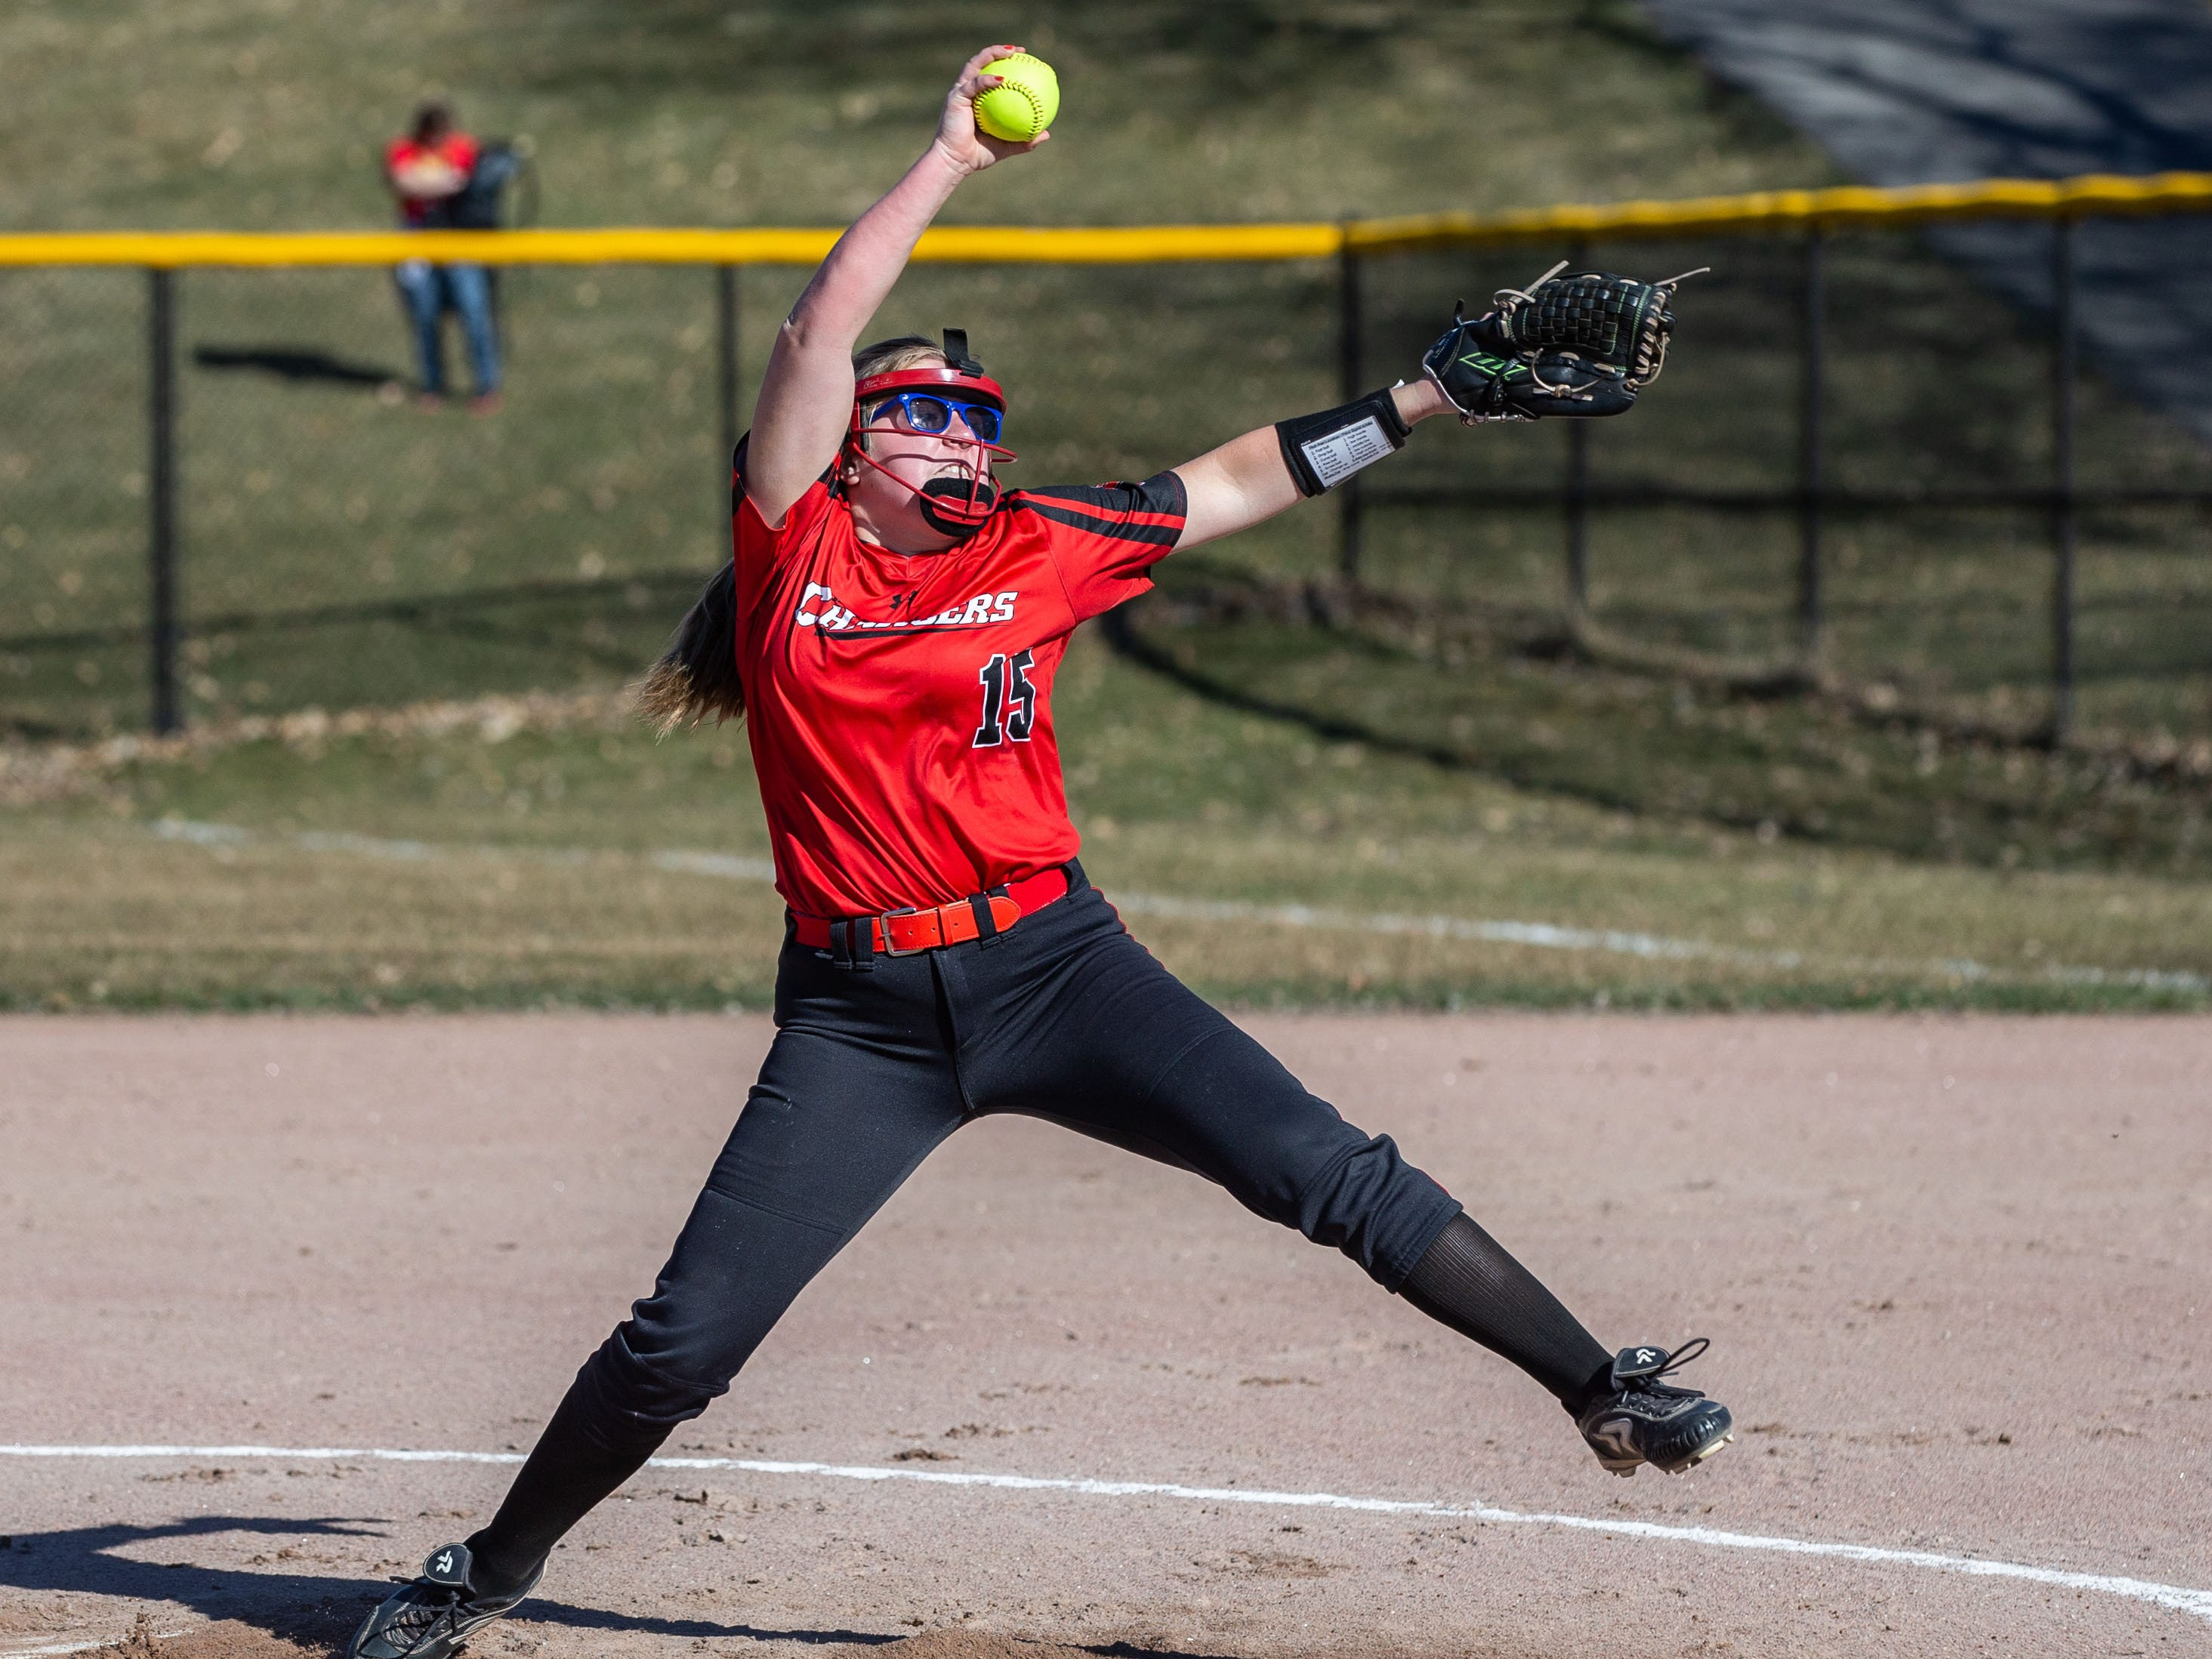 Sussex Hamilton pitcher Julianne Claas (15) winds up during the game at Oconomowoc on Monday, April 8, 2019.